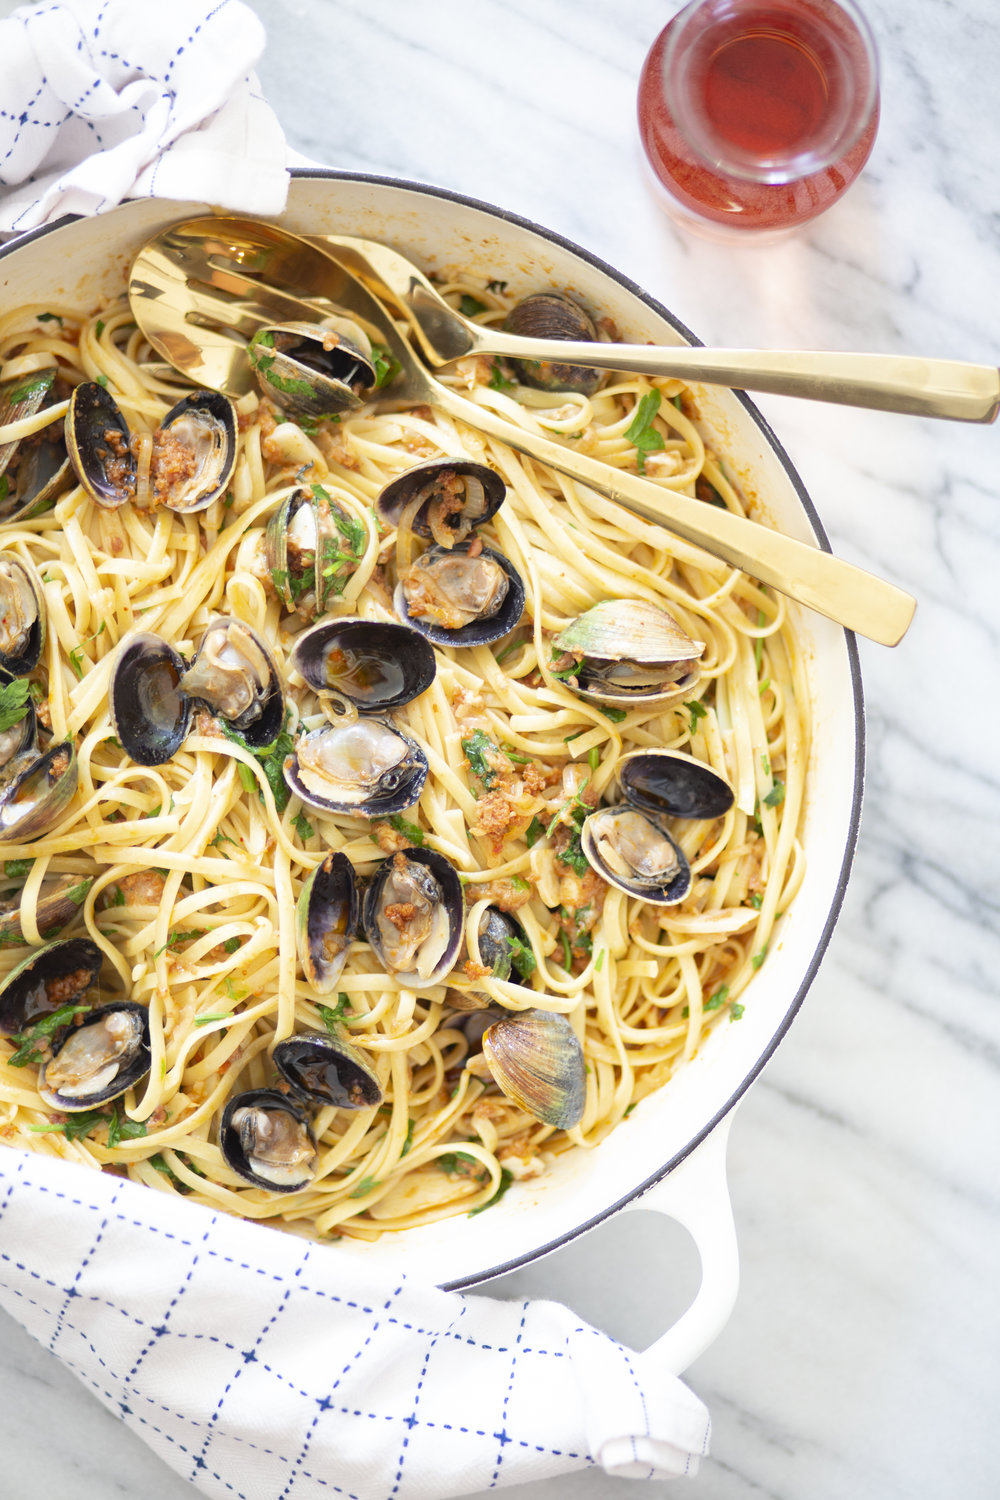 Copy of Rosé and Sausage Linguine and Clams.jpg